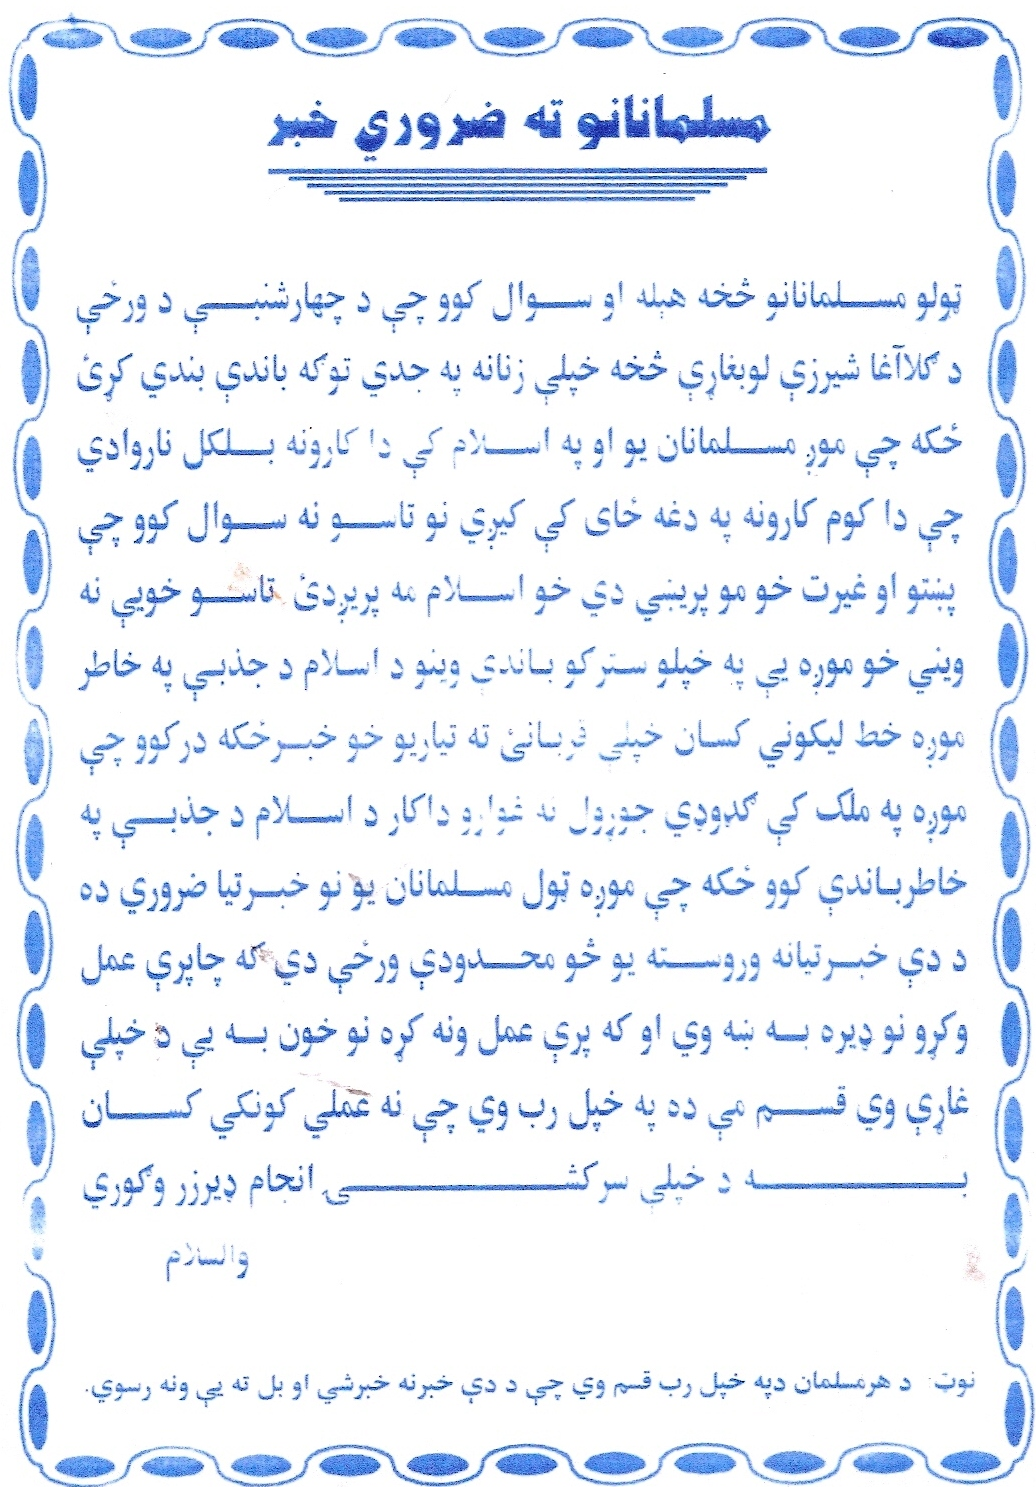 This Night Letter was posted around Jalalabad last week